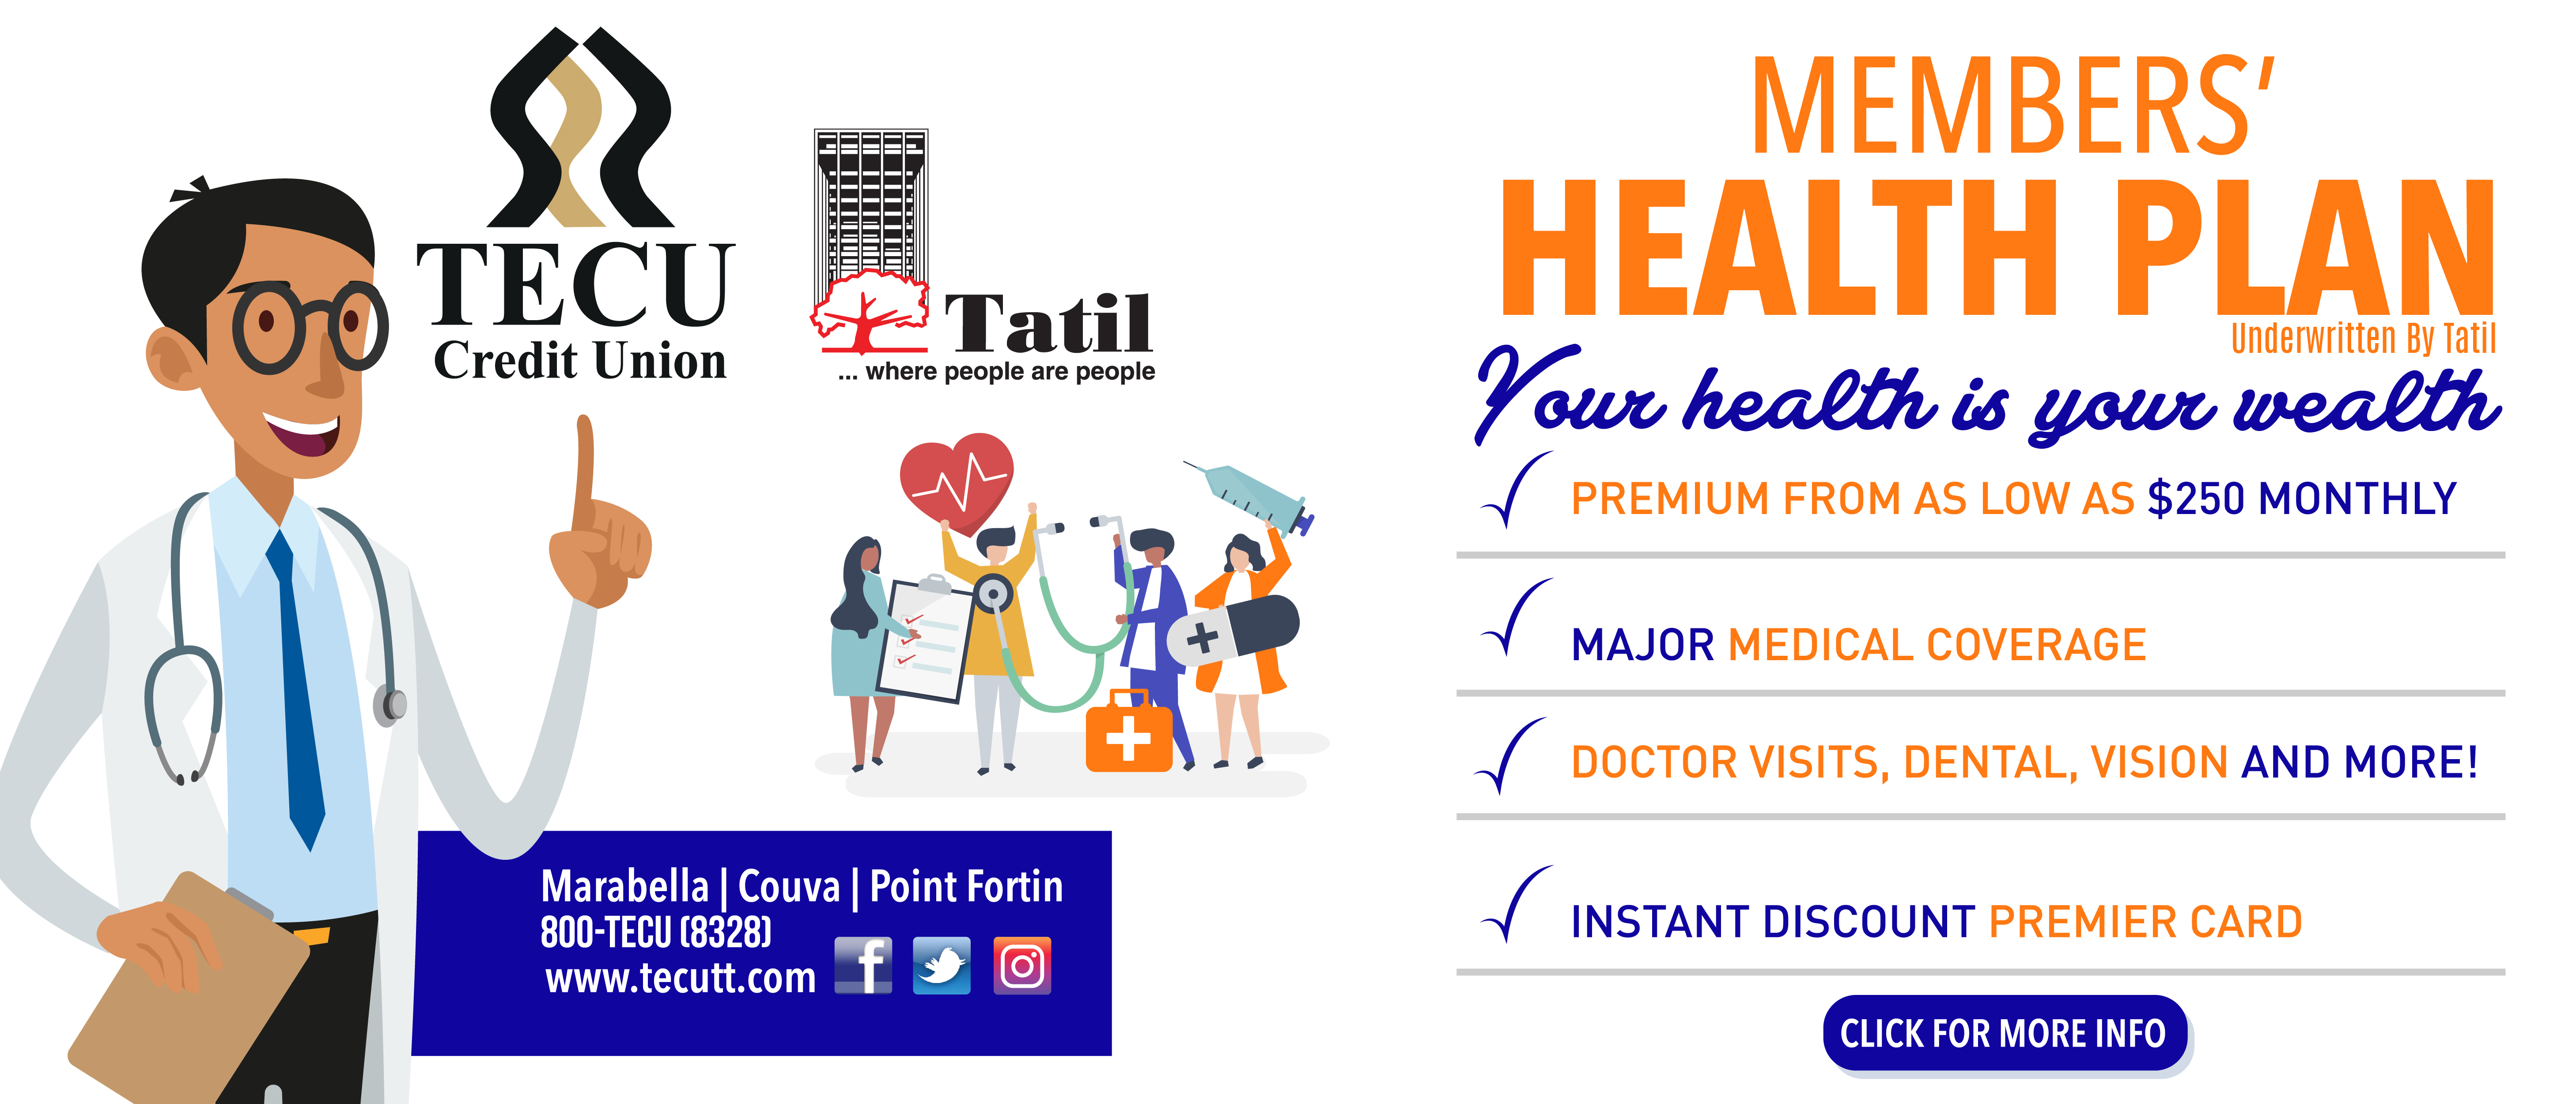 TECU-HEALTHPLAN-ARTWORK-changes_Carosel